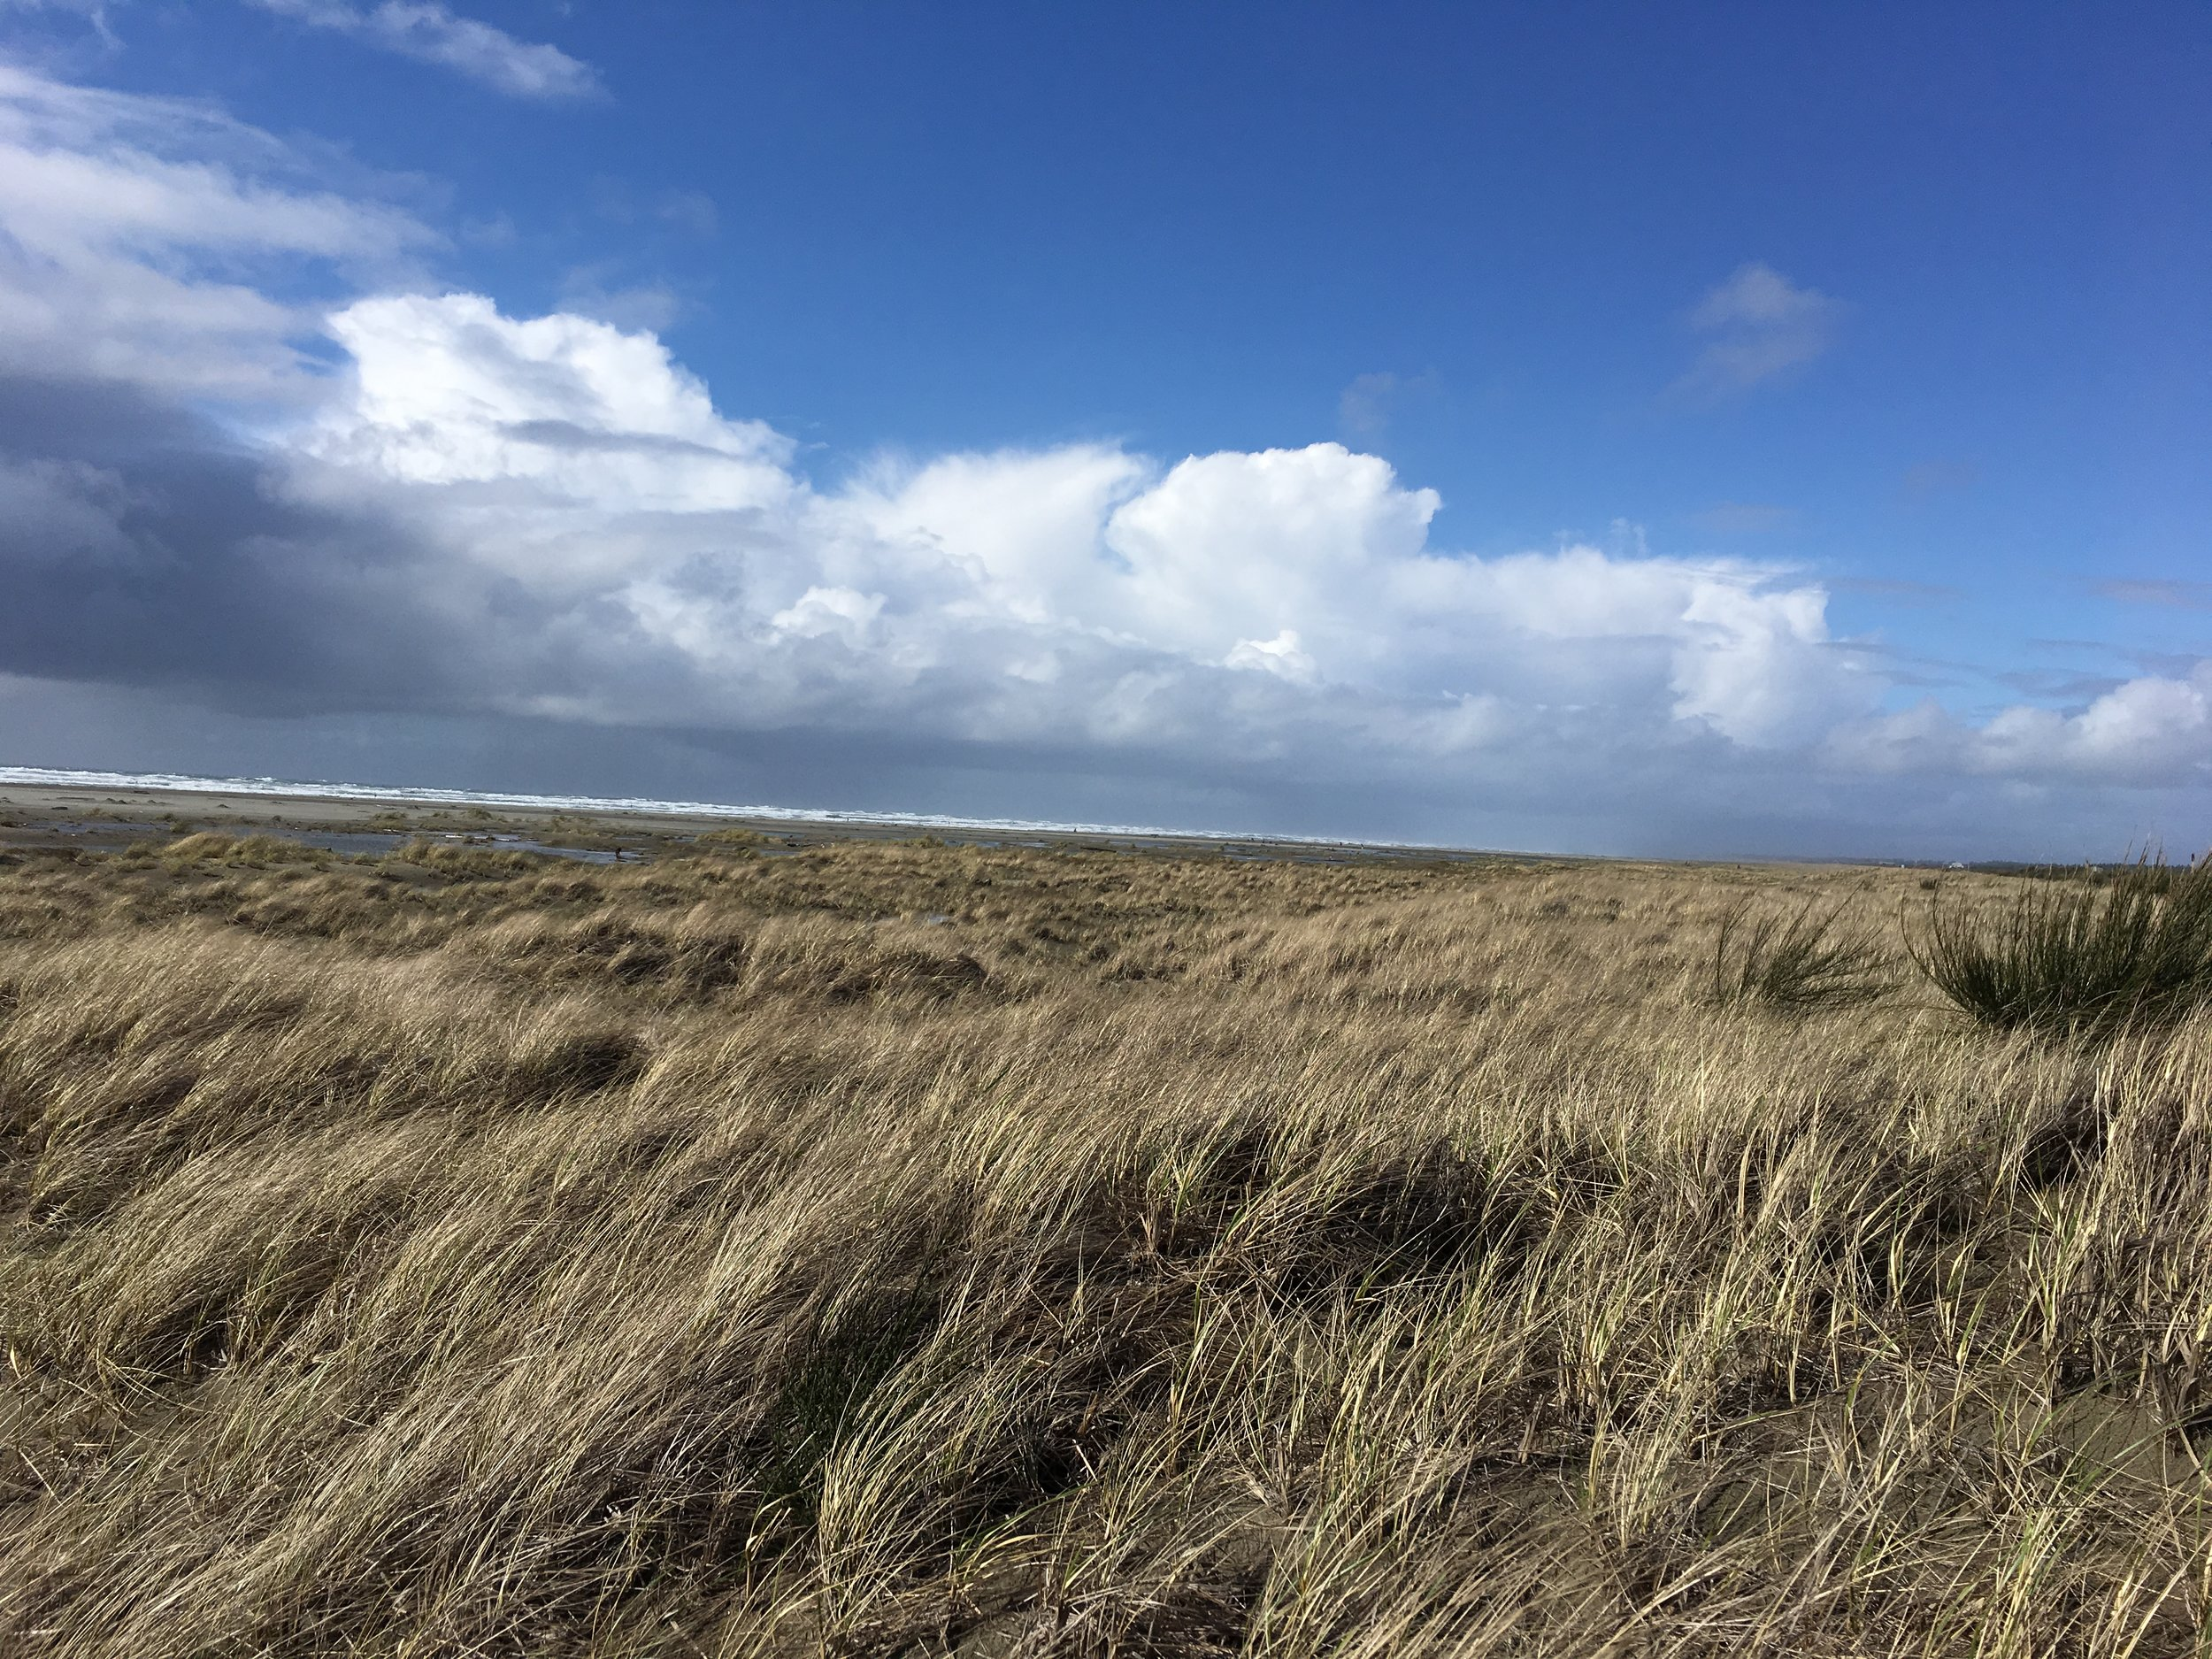 At Grayland Beach State Park, we had to walk over grassy dunes to the ocean.